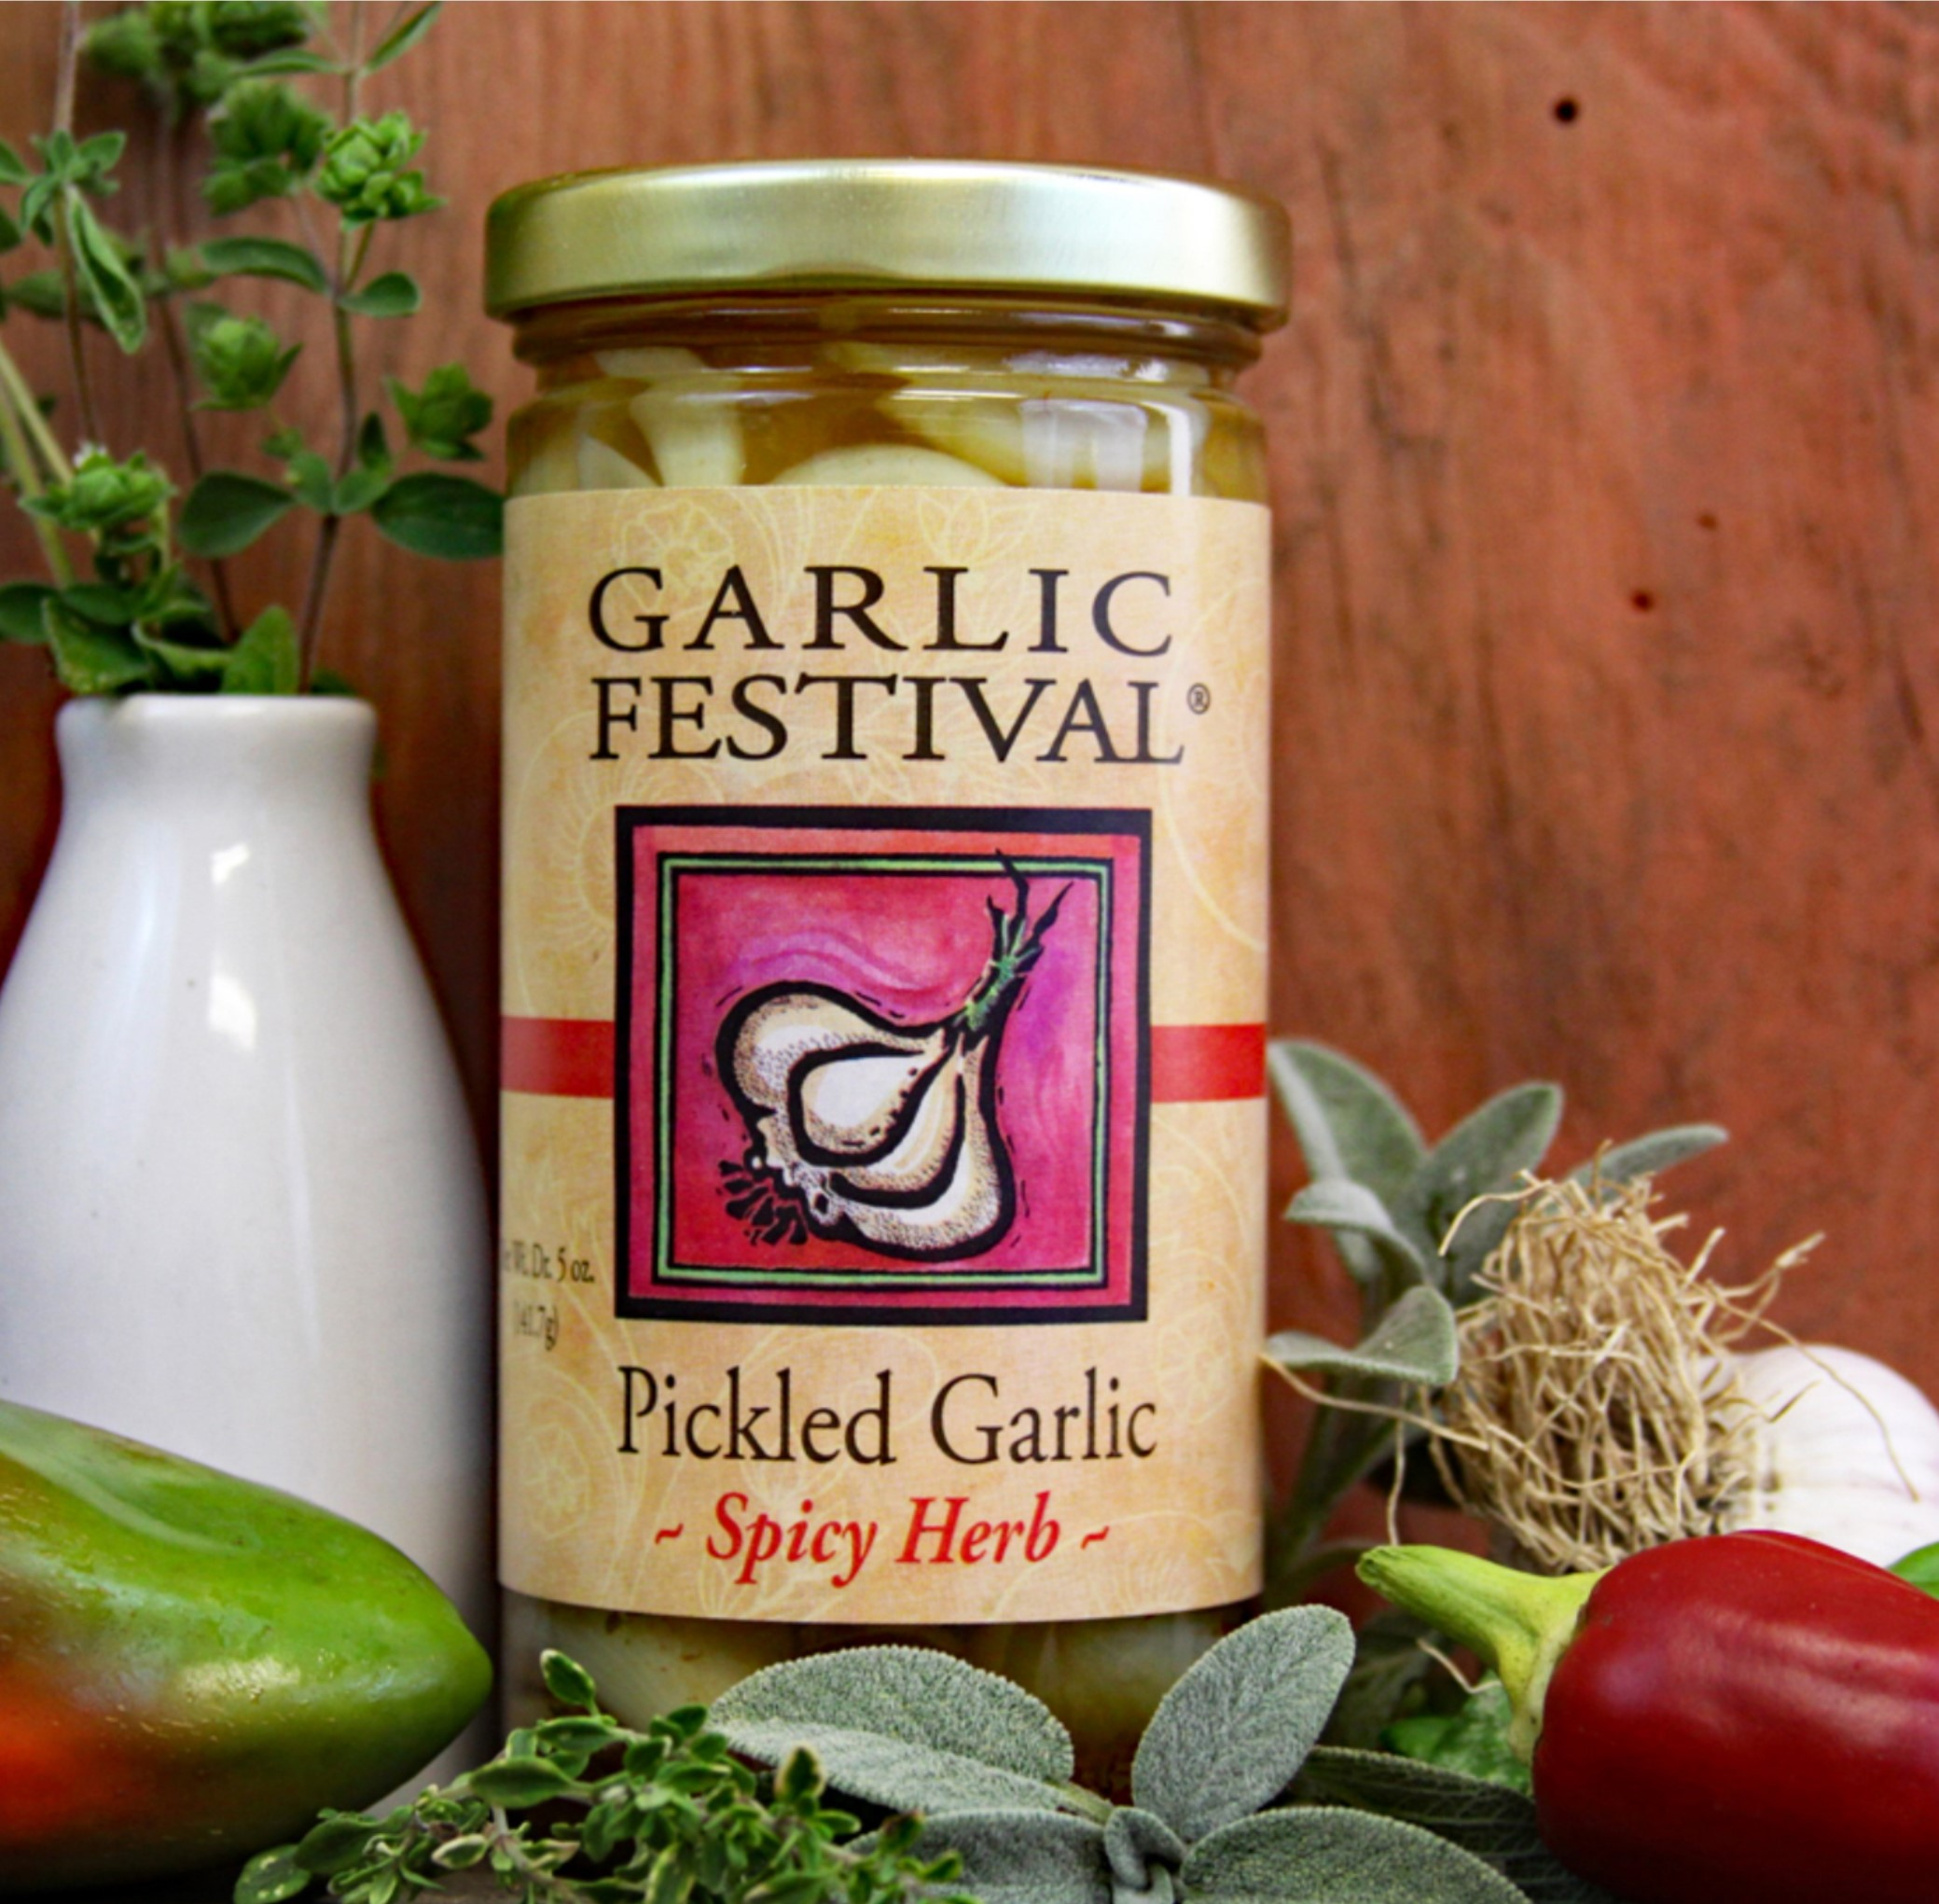 Spicy Herb Pickled Garlic